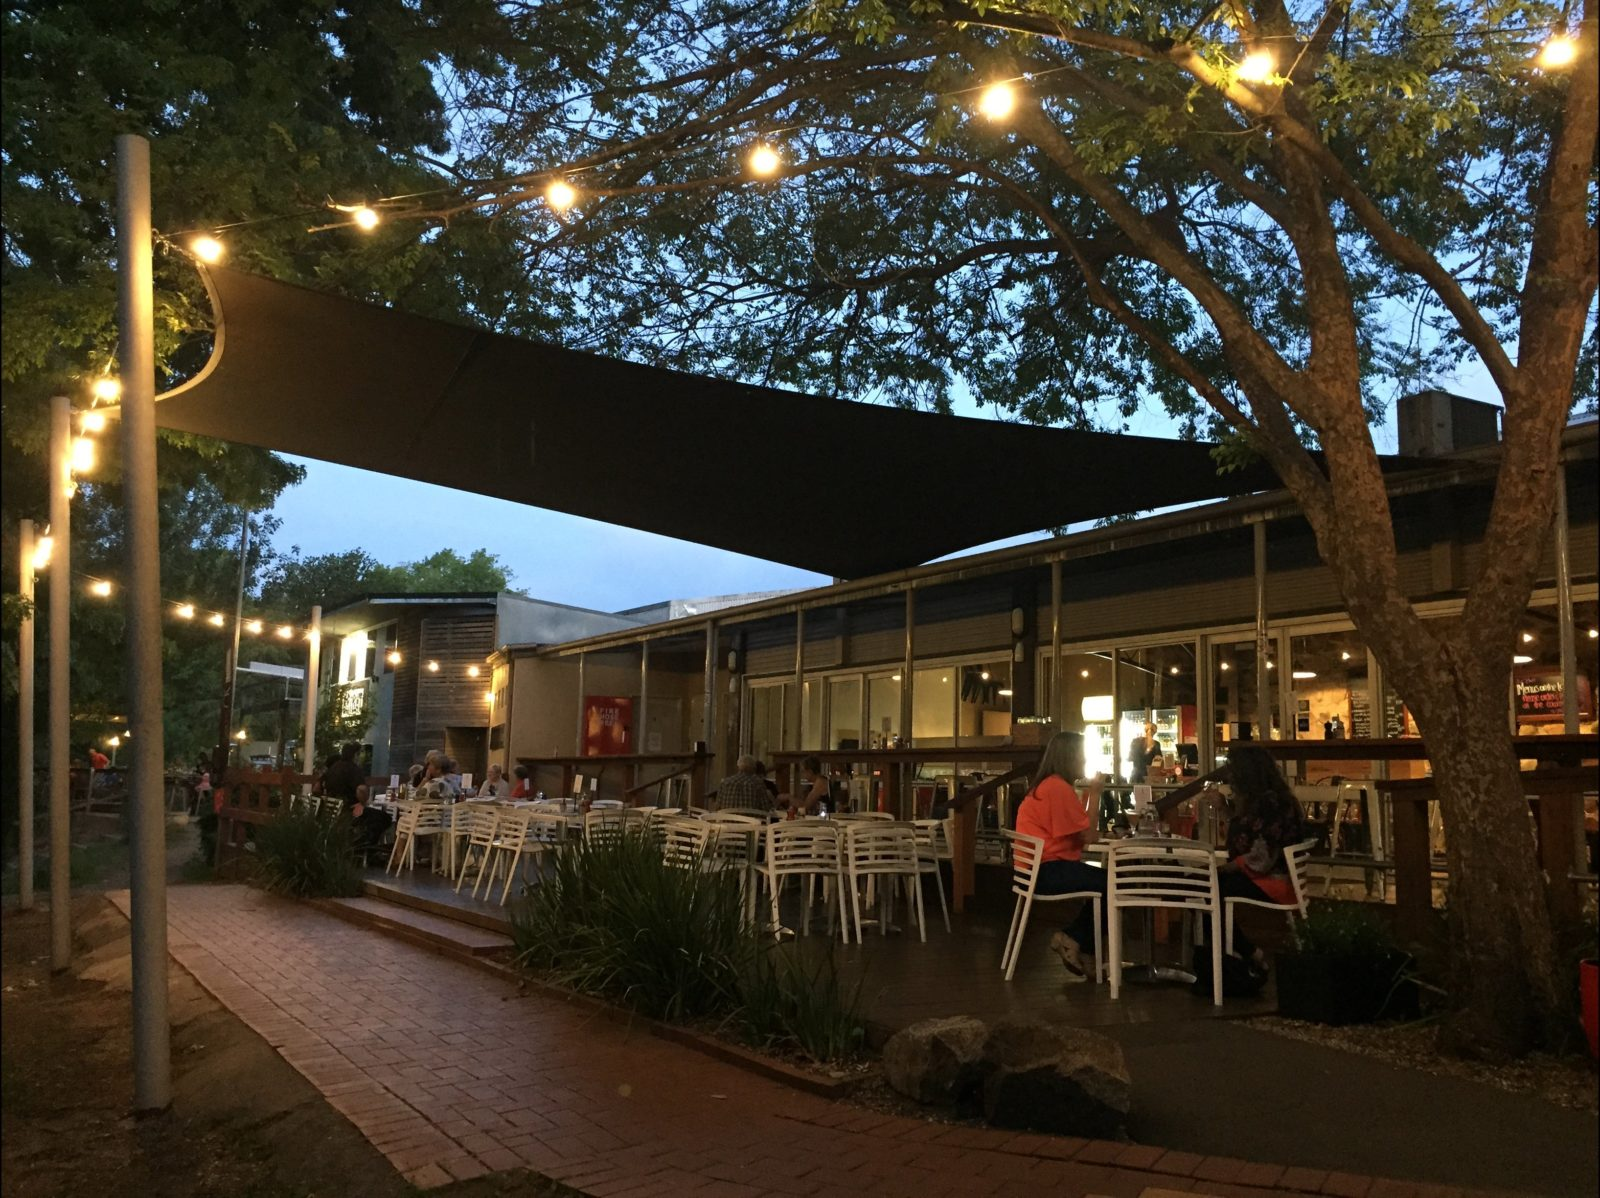 Summer evenings at the Riverdeck